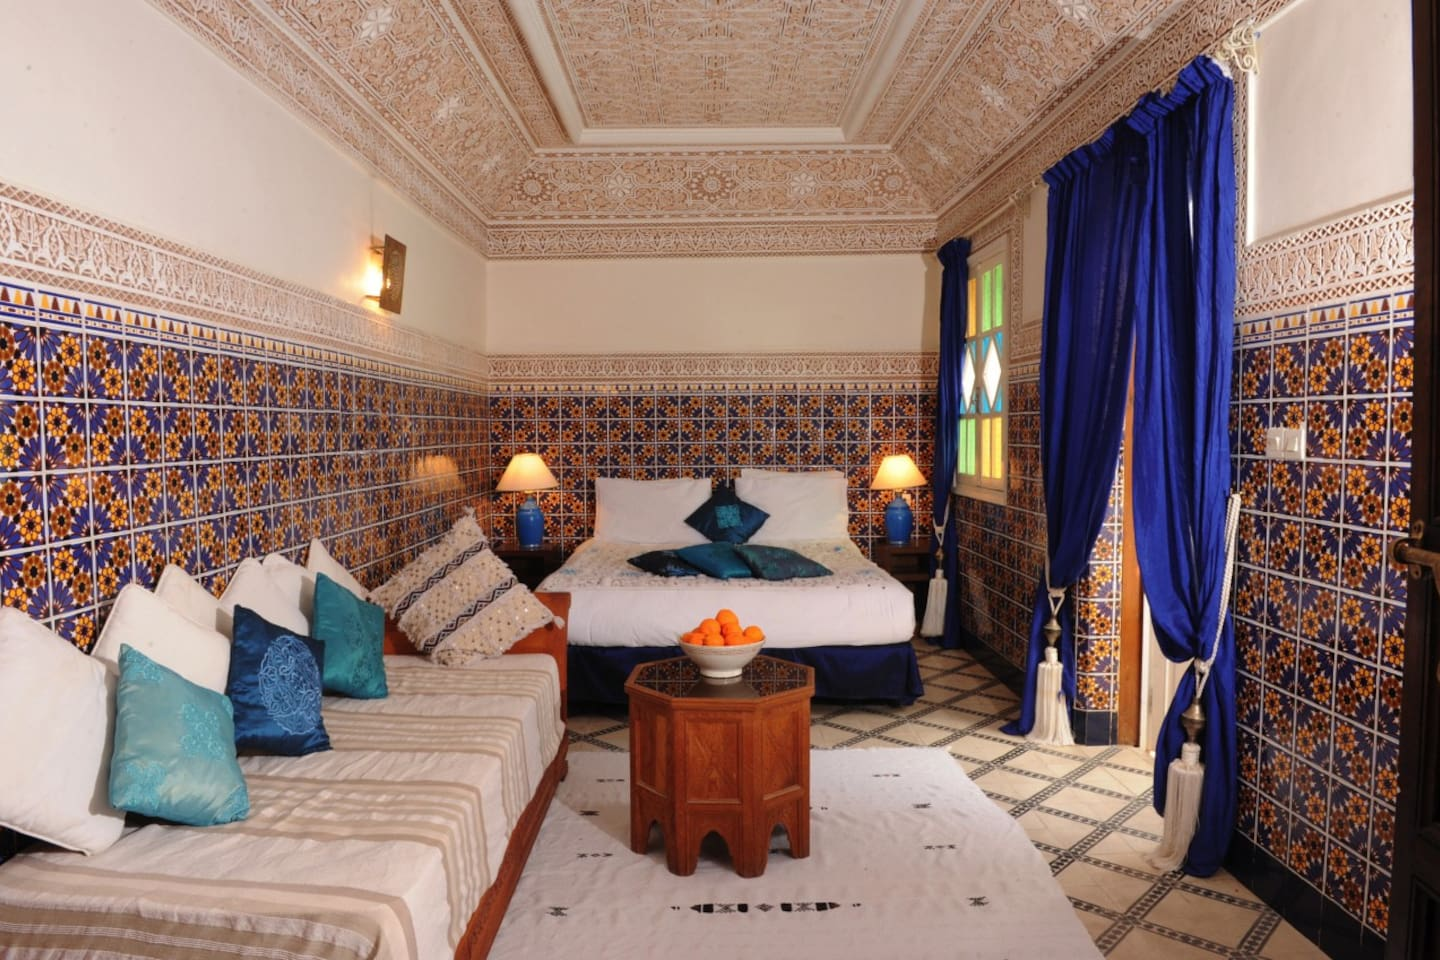 Our beautiful and traditional Amir suite